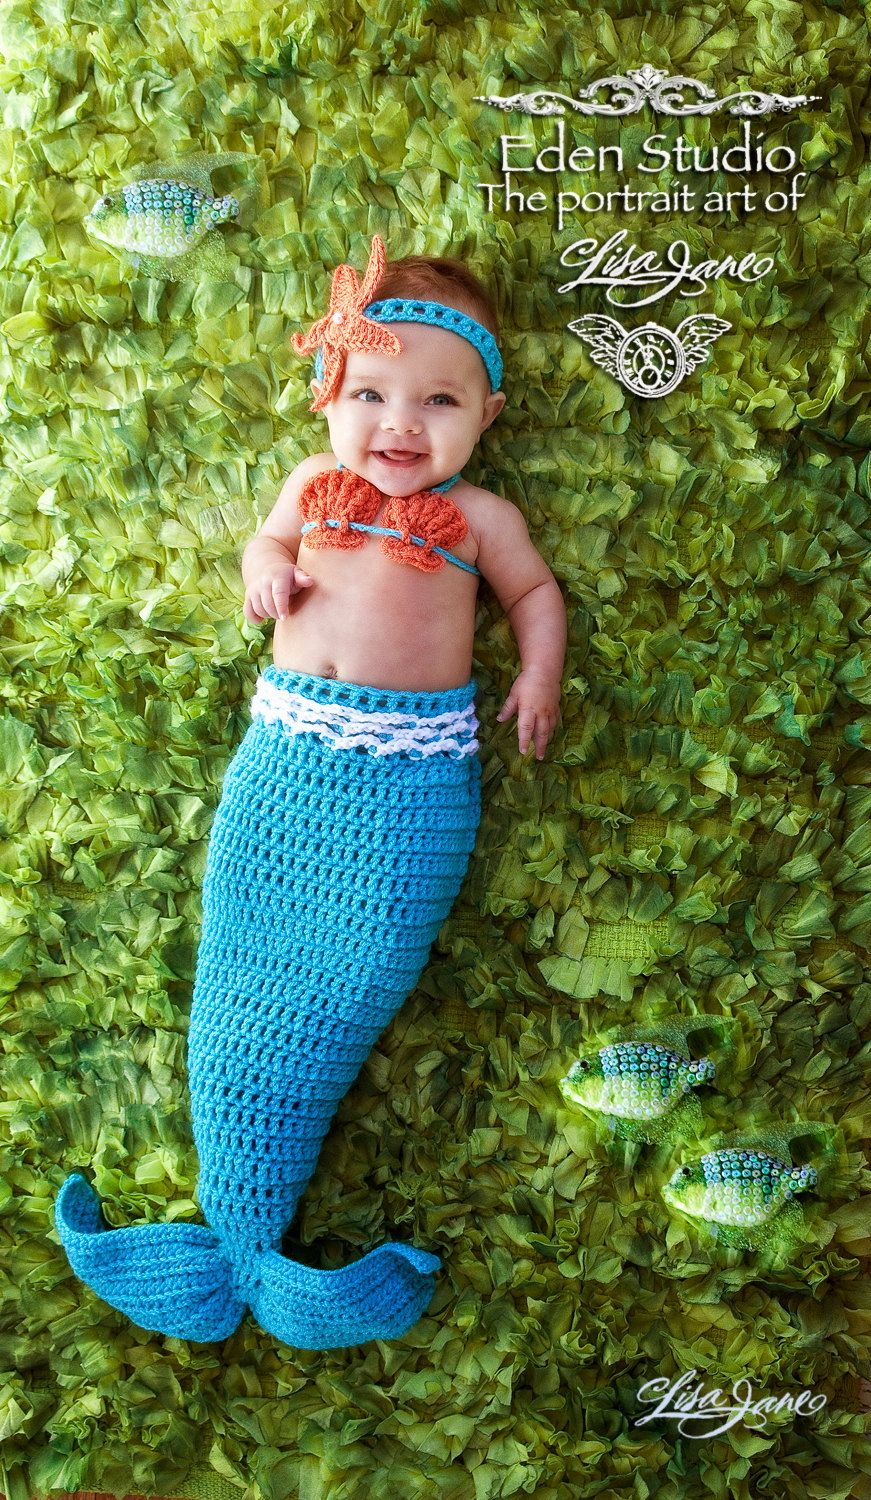 Crochet Mermaid Tail, Photo Prop Set - 3 -6 months - Photography Prop, Cocoon. $37.00, via Etsy.